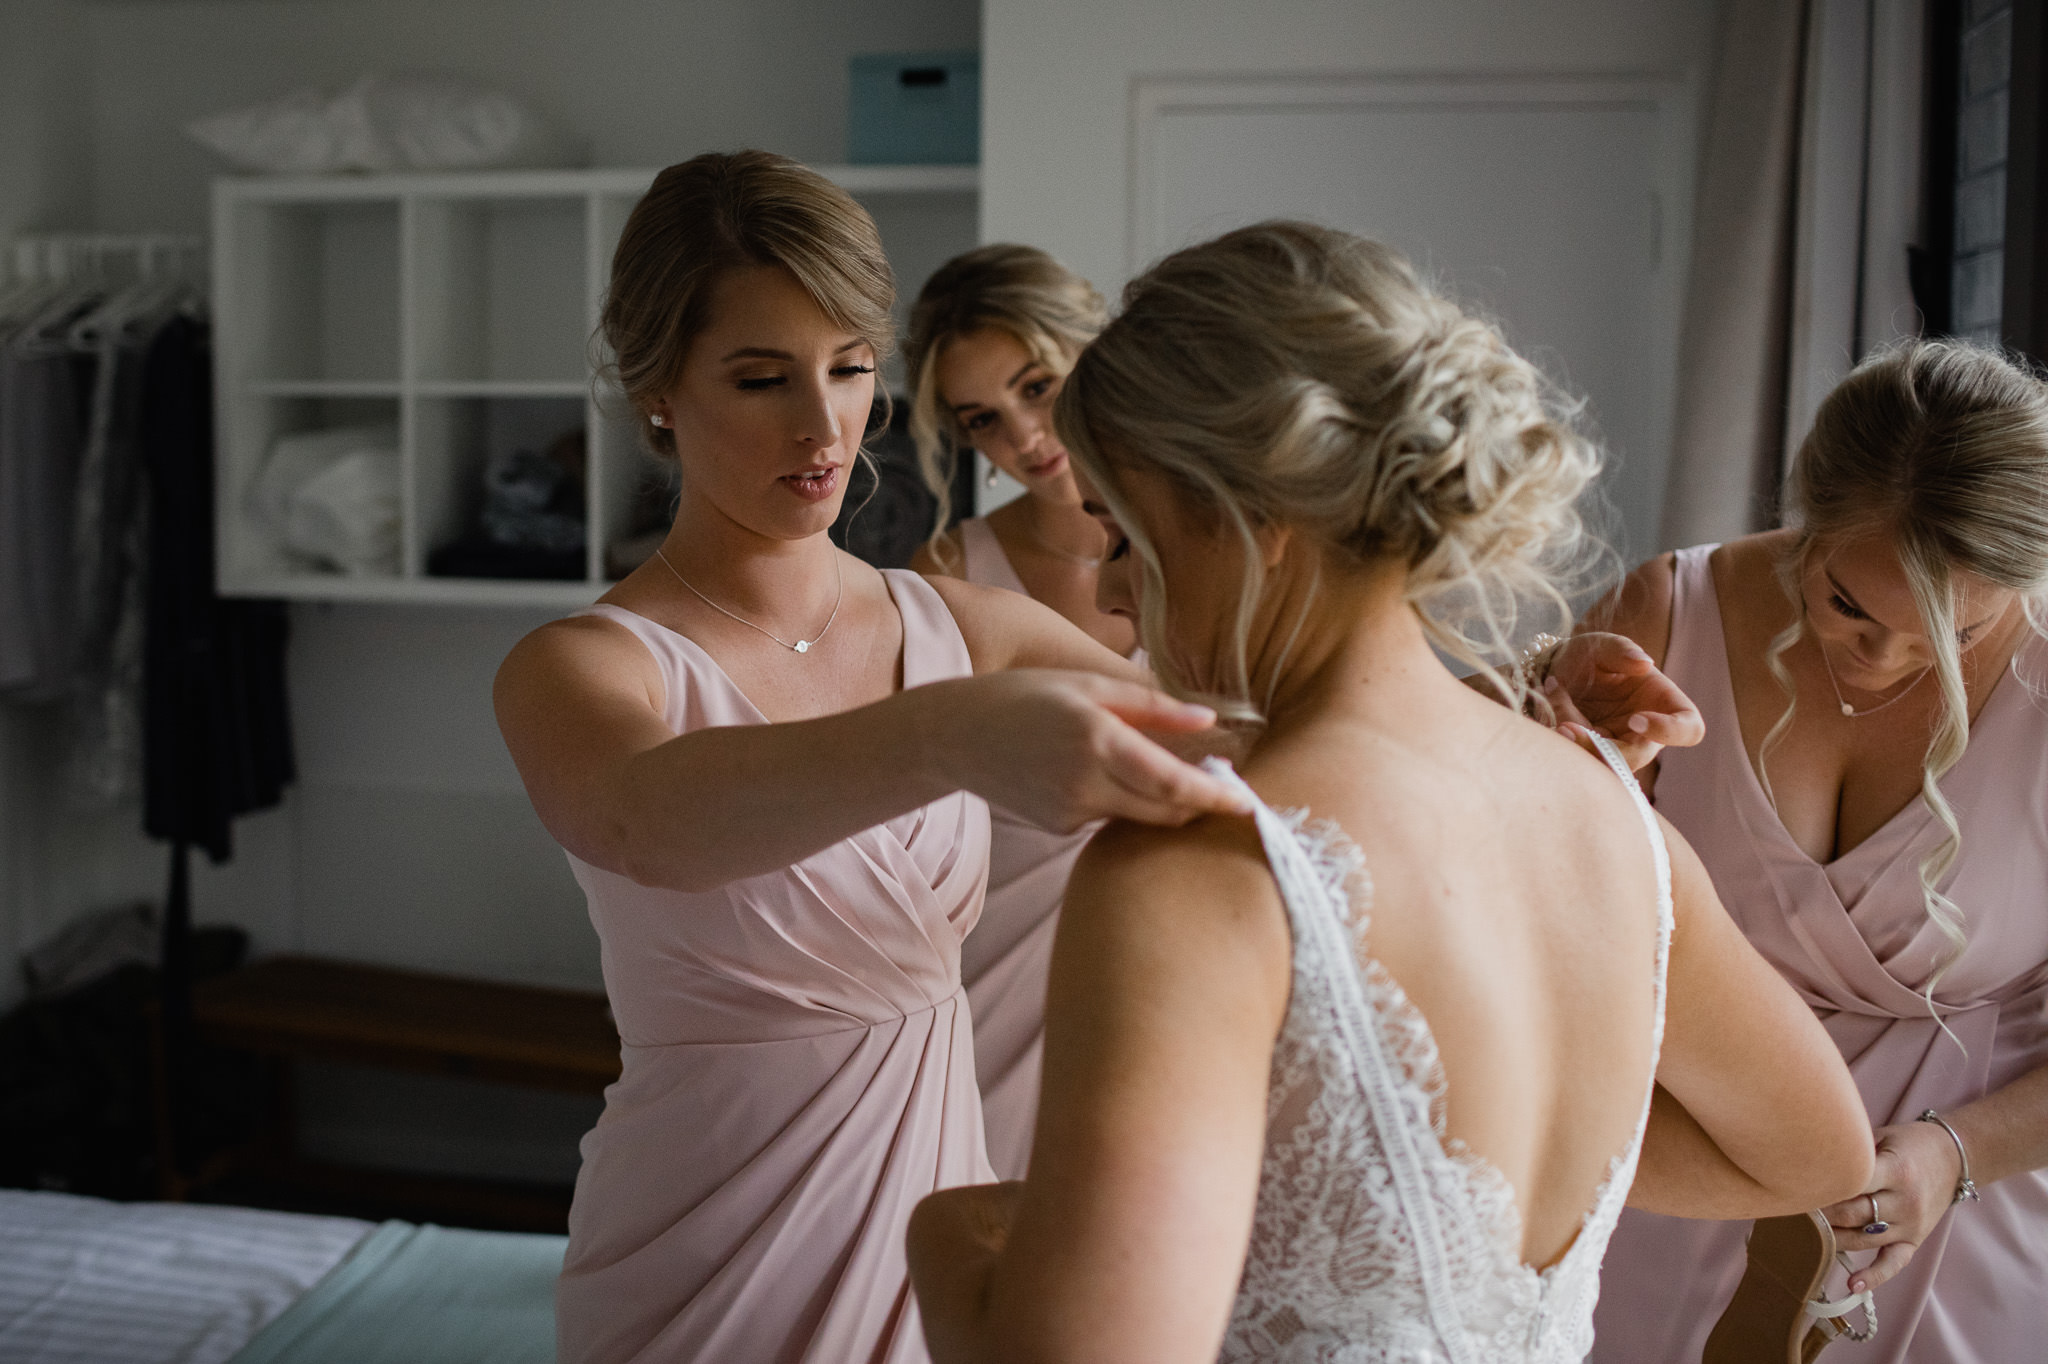 bridesmaids and sisters helping bride with wedding dress